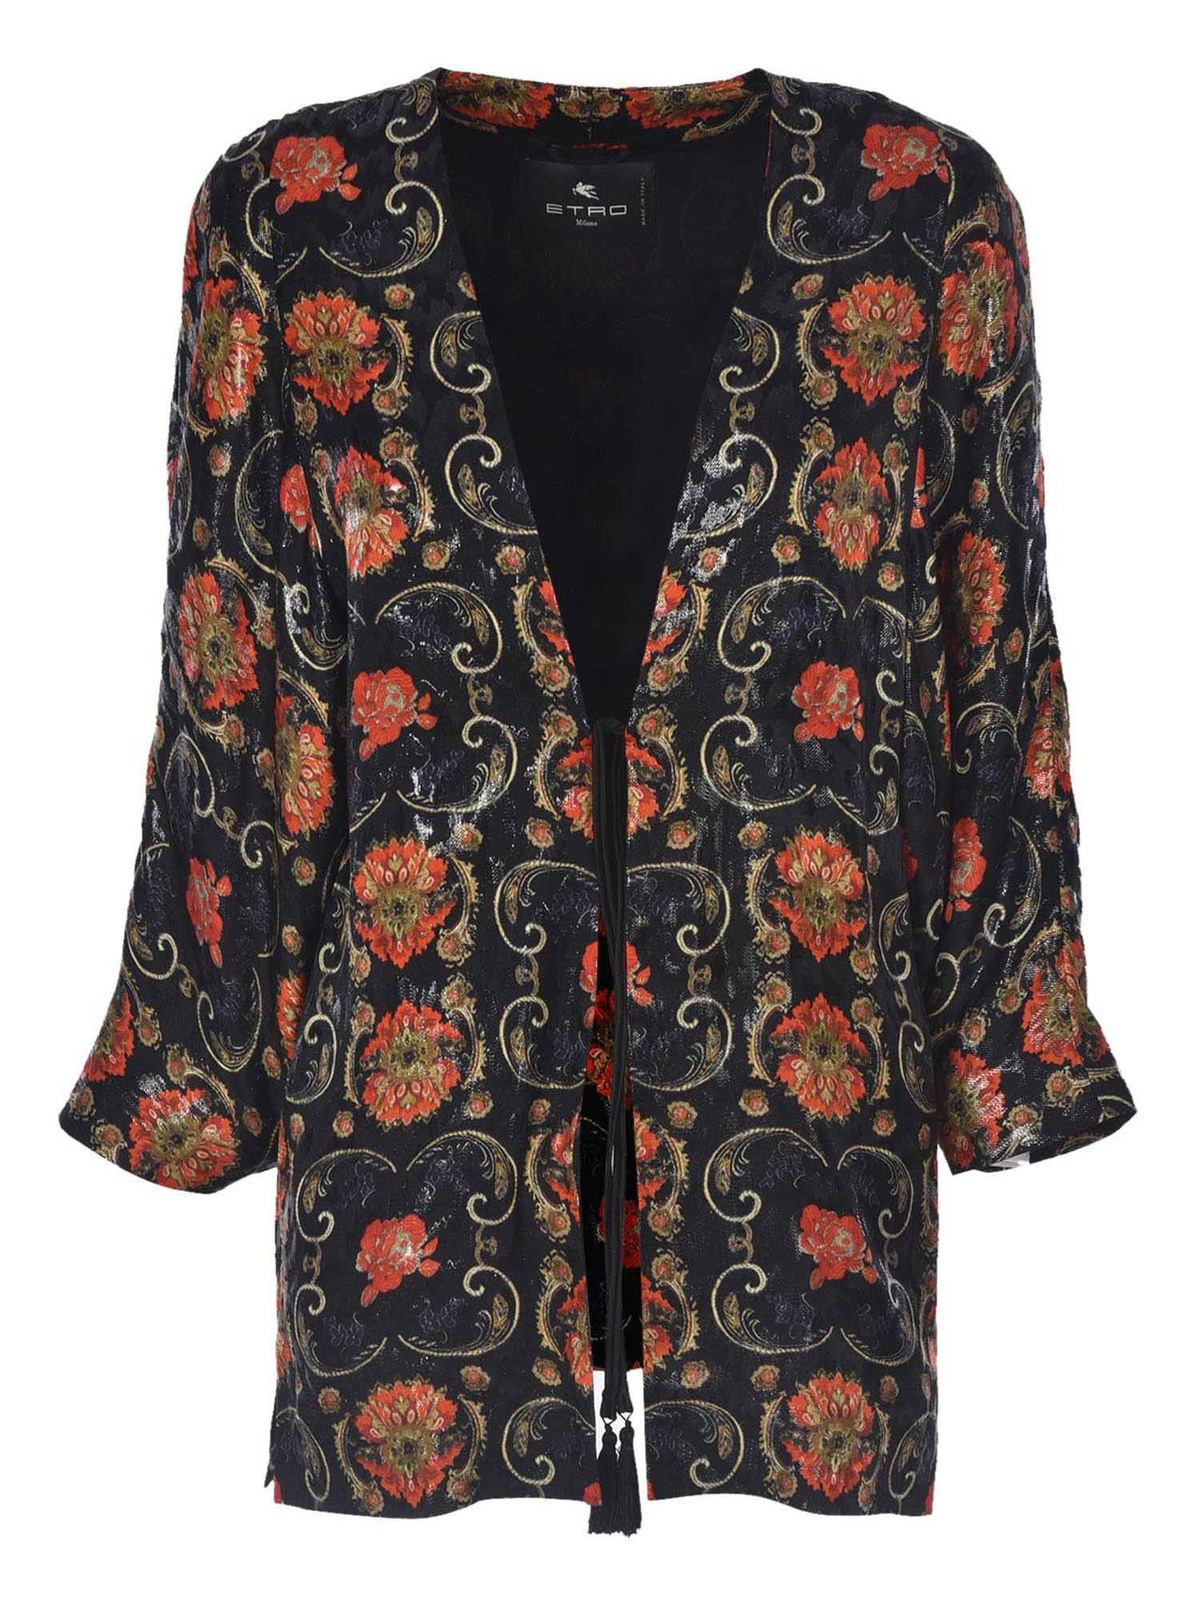 Etro JACKET IN BLACK WITH FLORAL PRINT